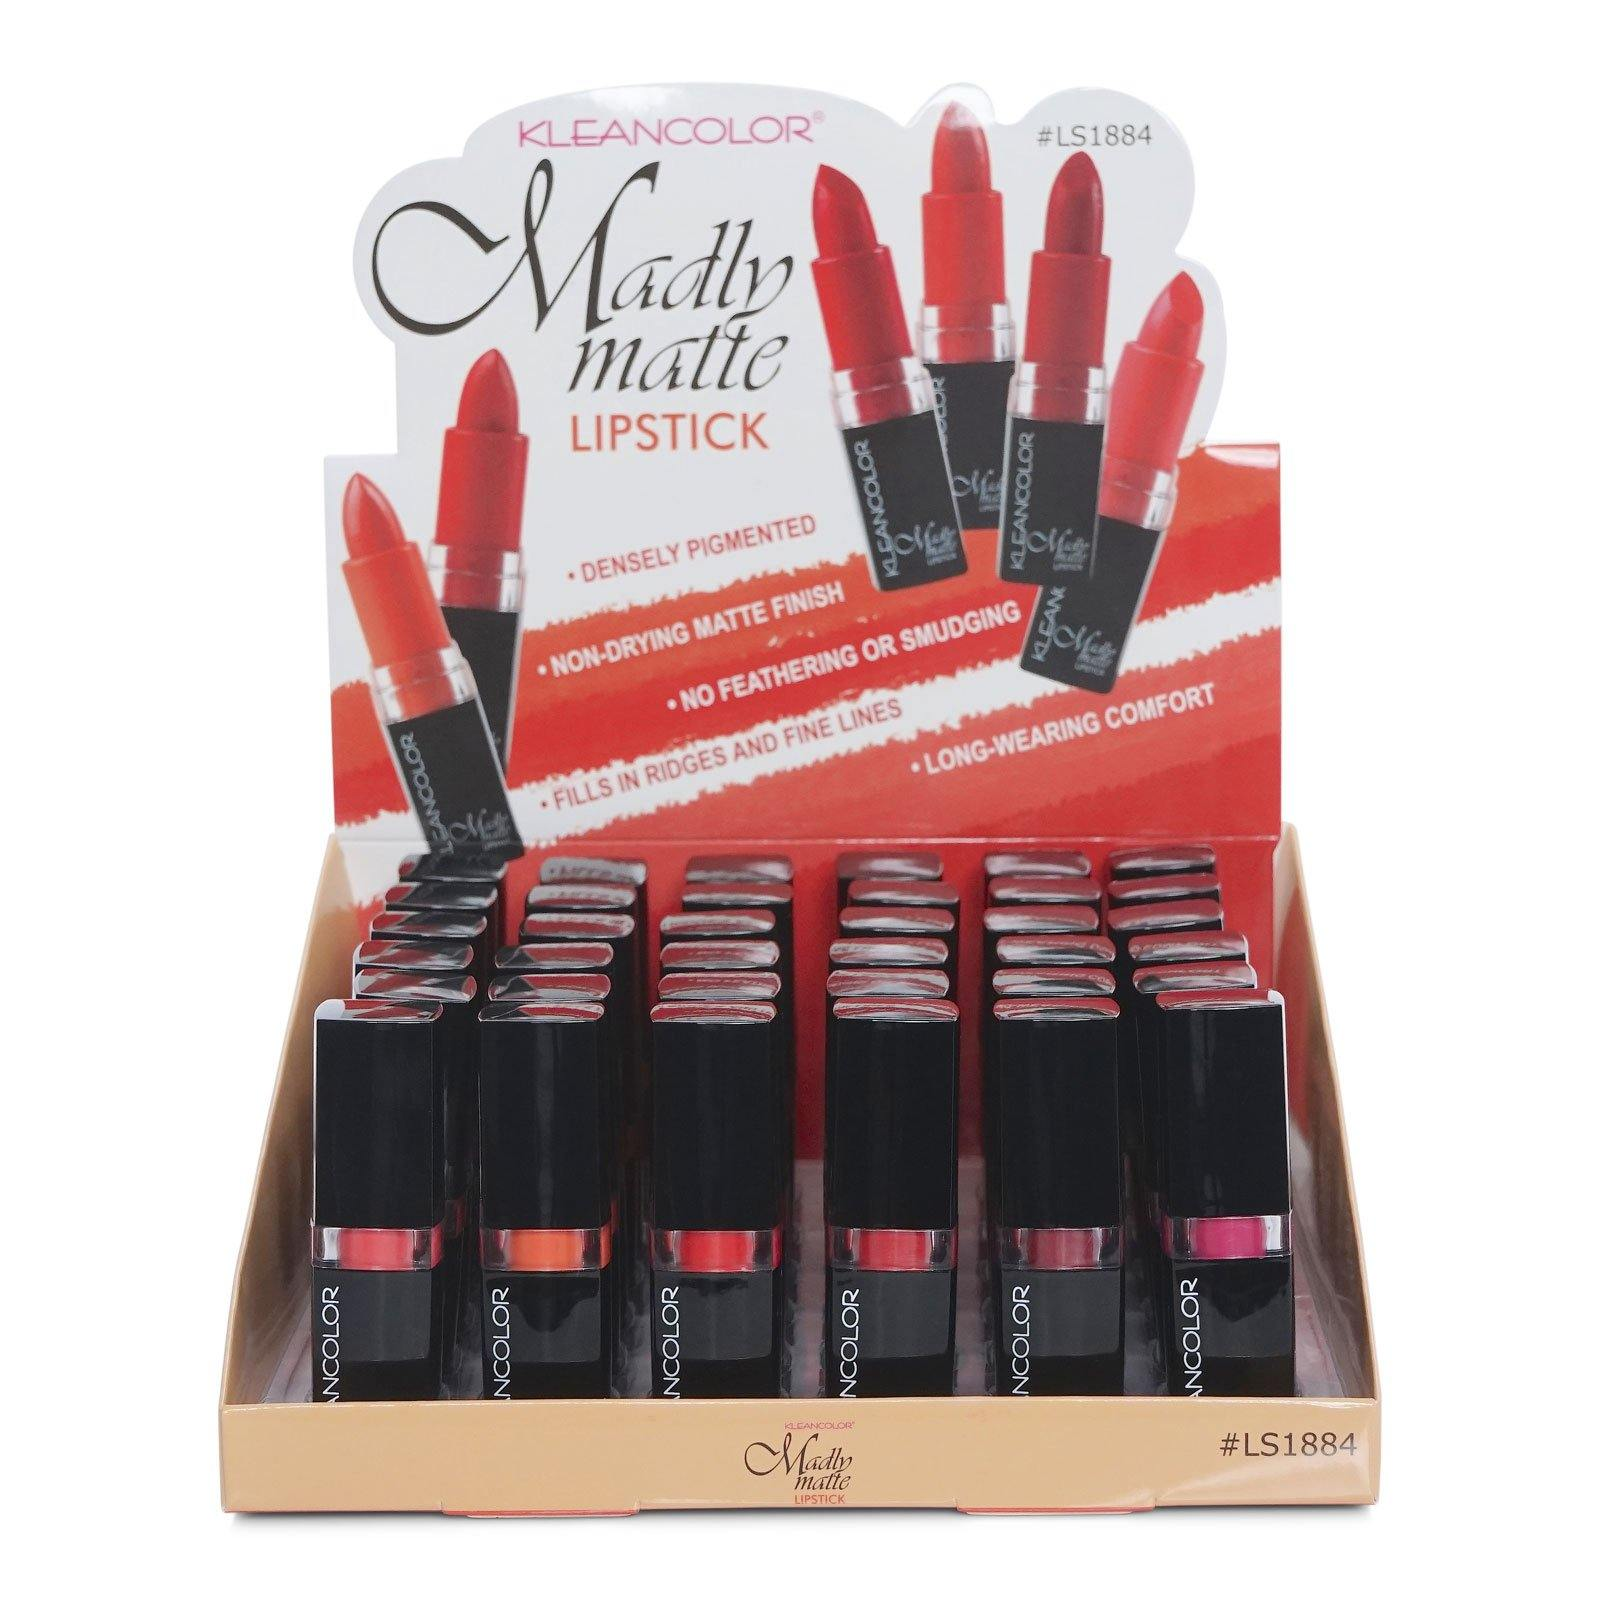 KLEANCOLOR Madly Matte Lipstick-color rich matte lipstick, 6 color assorted {#2291-2296) (LS1884) (36/cs)